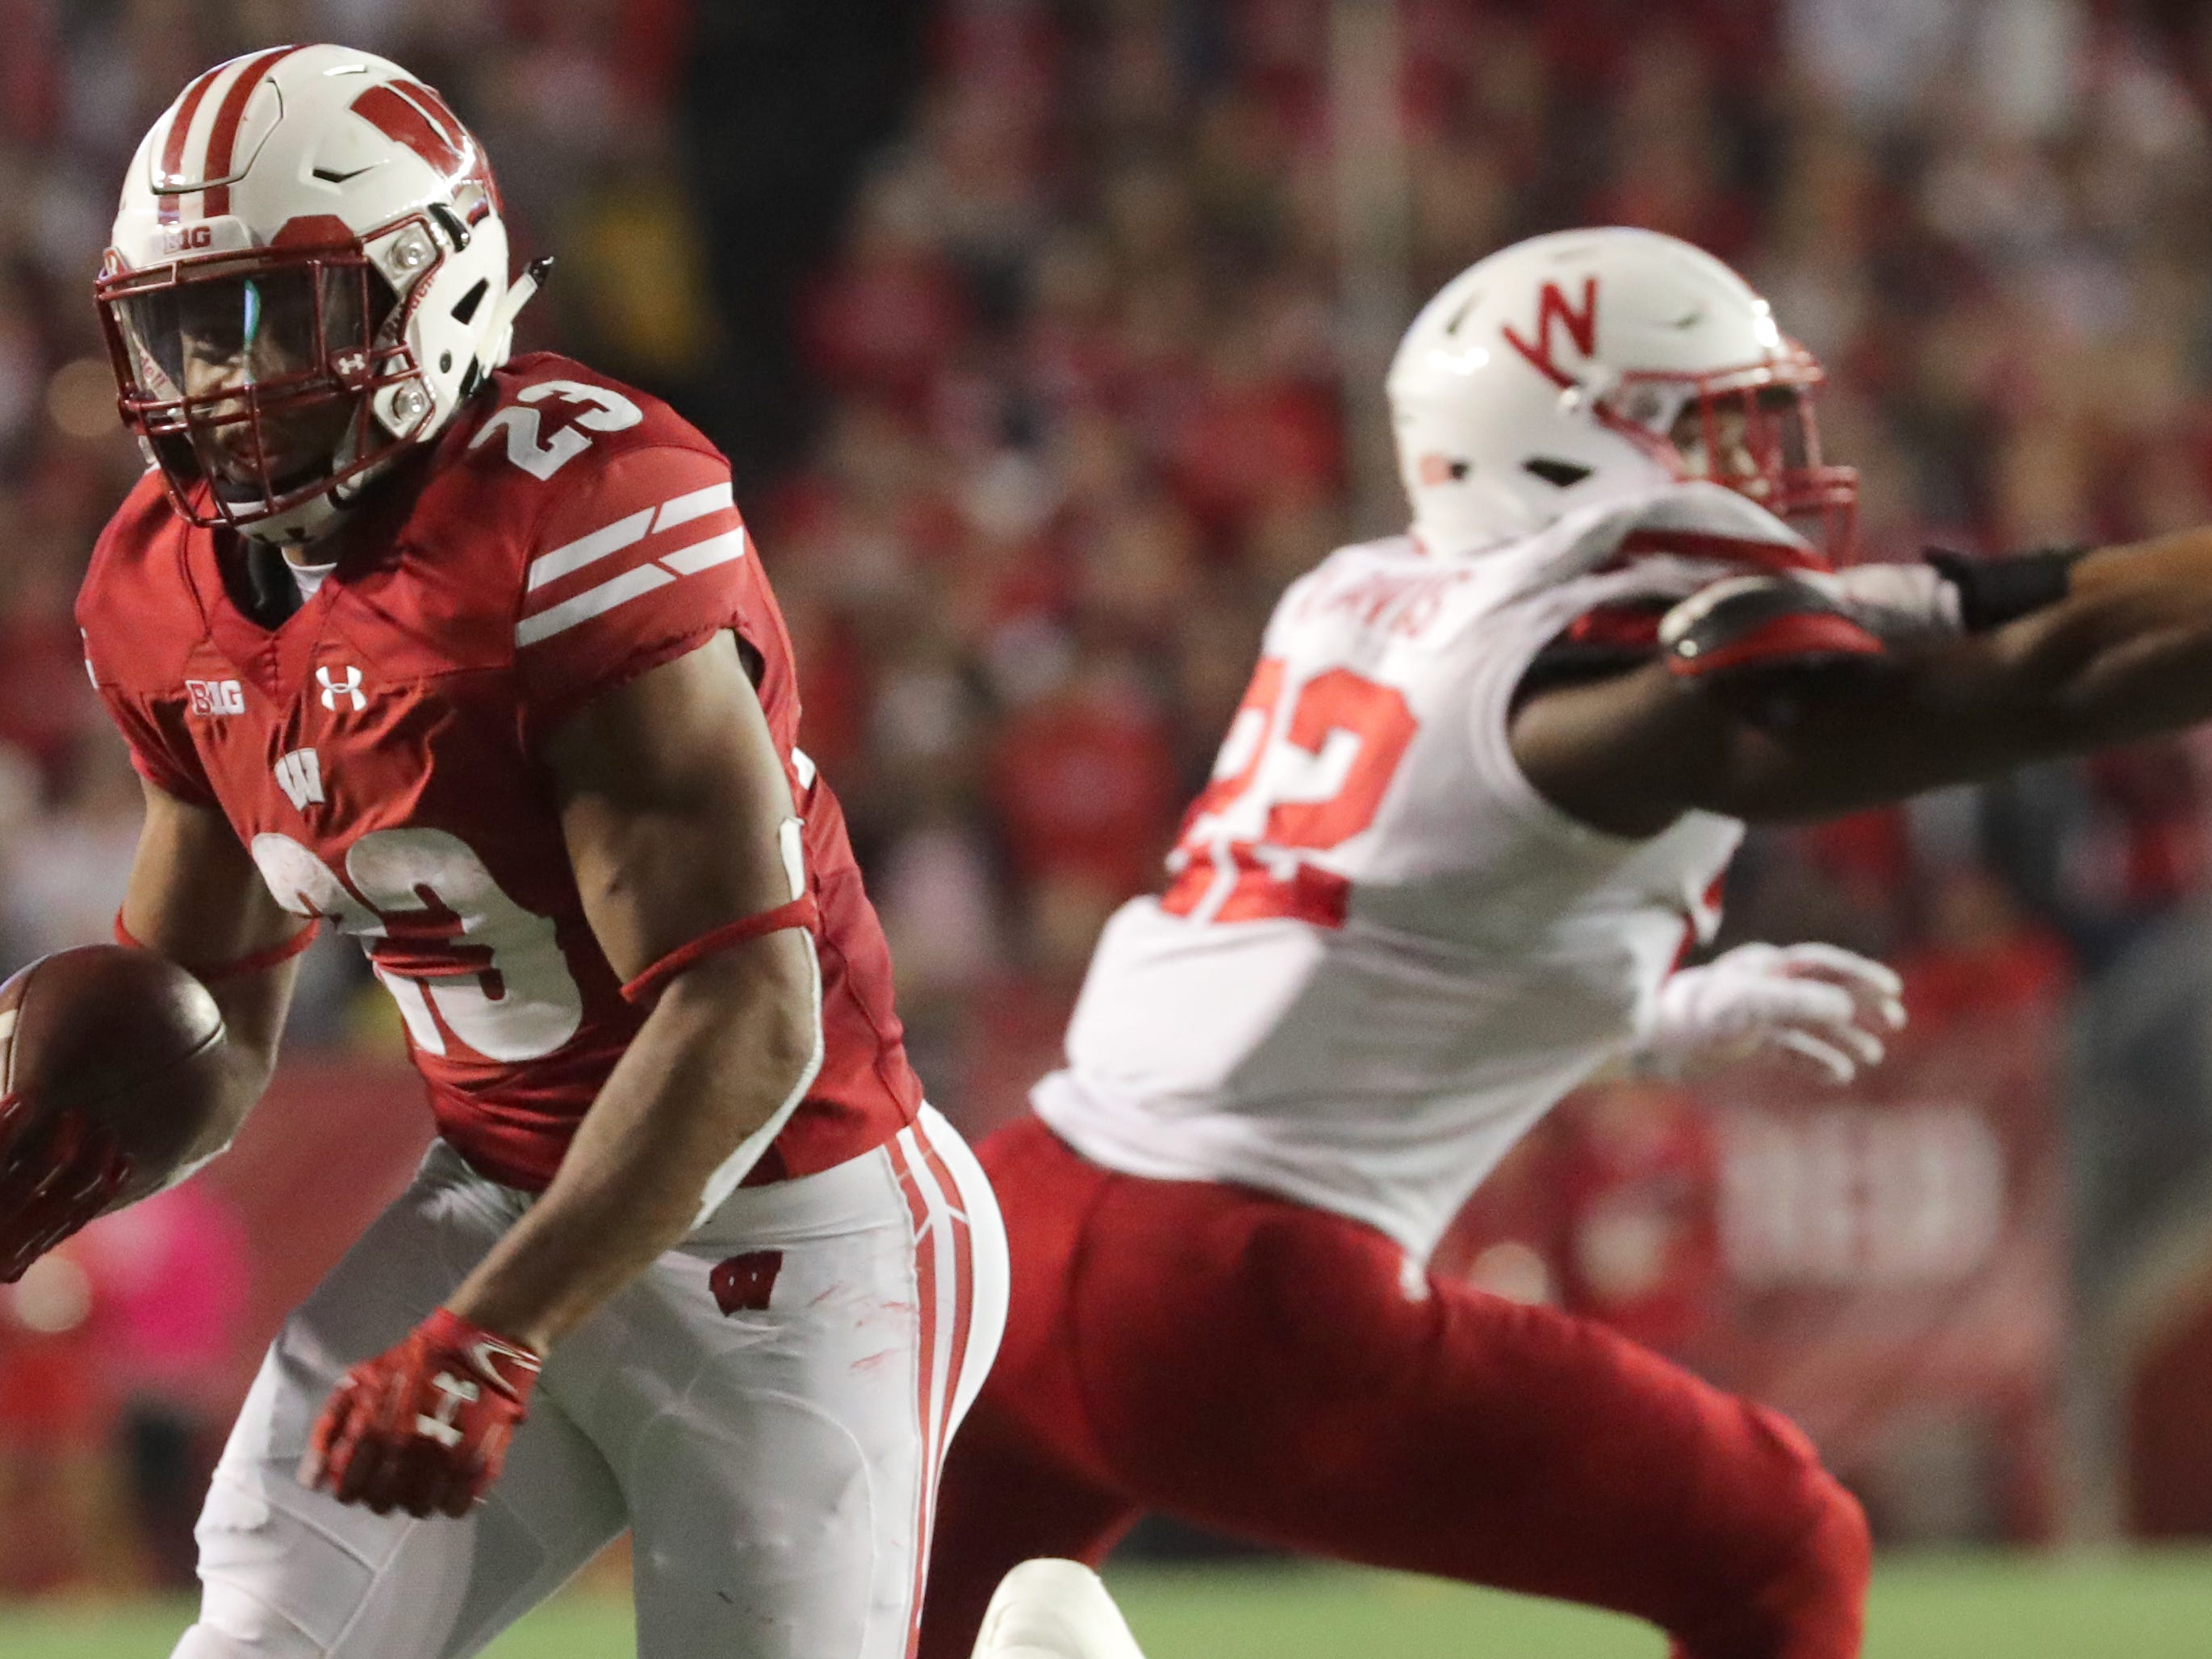 Jonathan Taylor of Wisconsin for a 21-yard touchdown run against Nebraska on Saturday night.